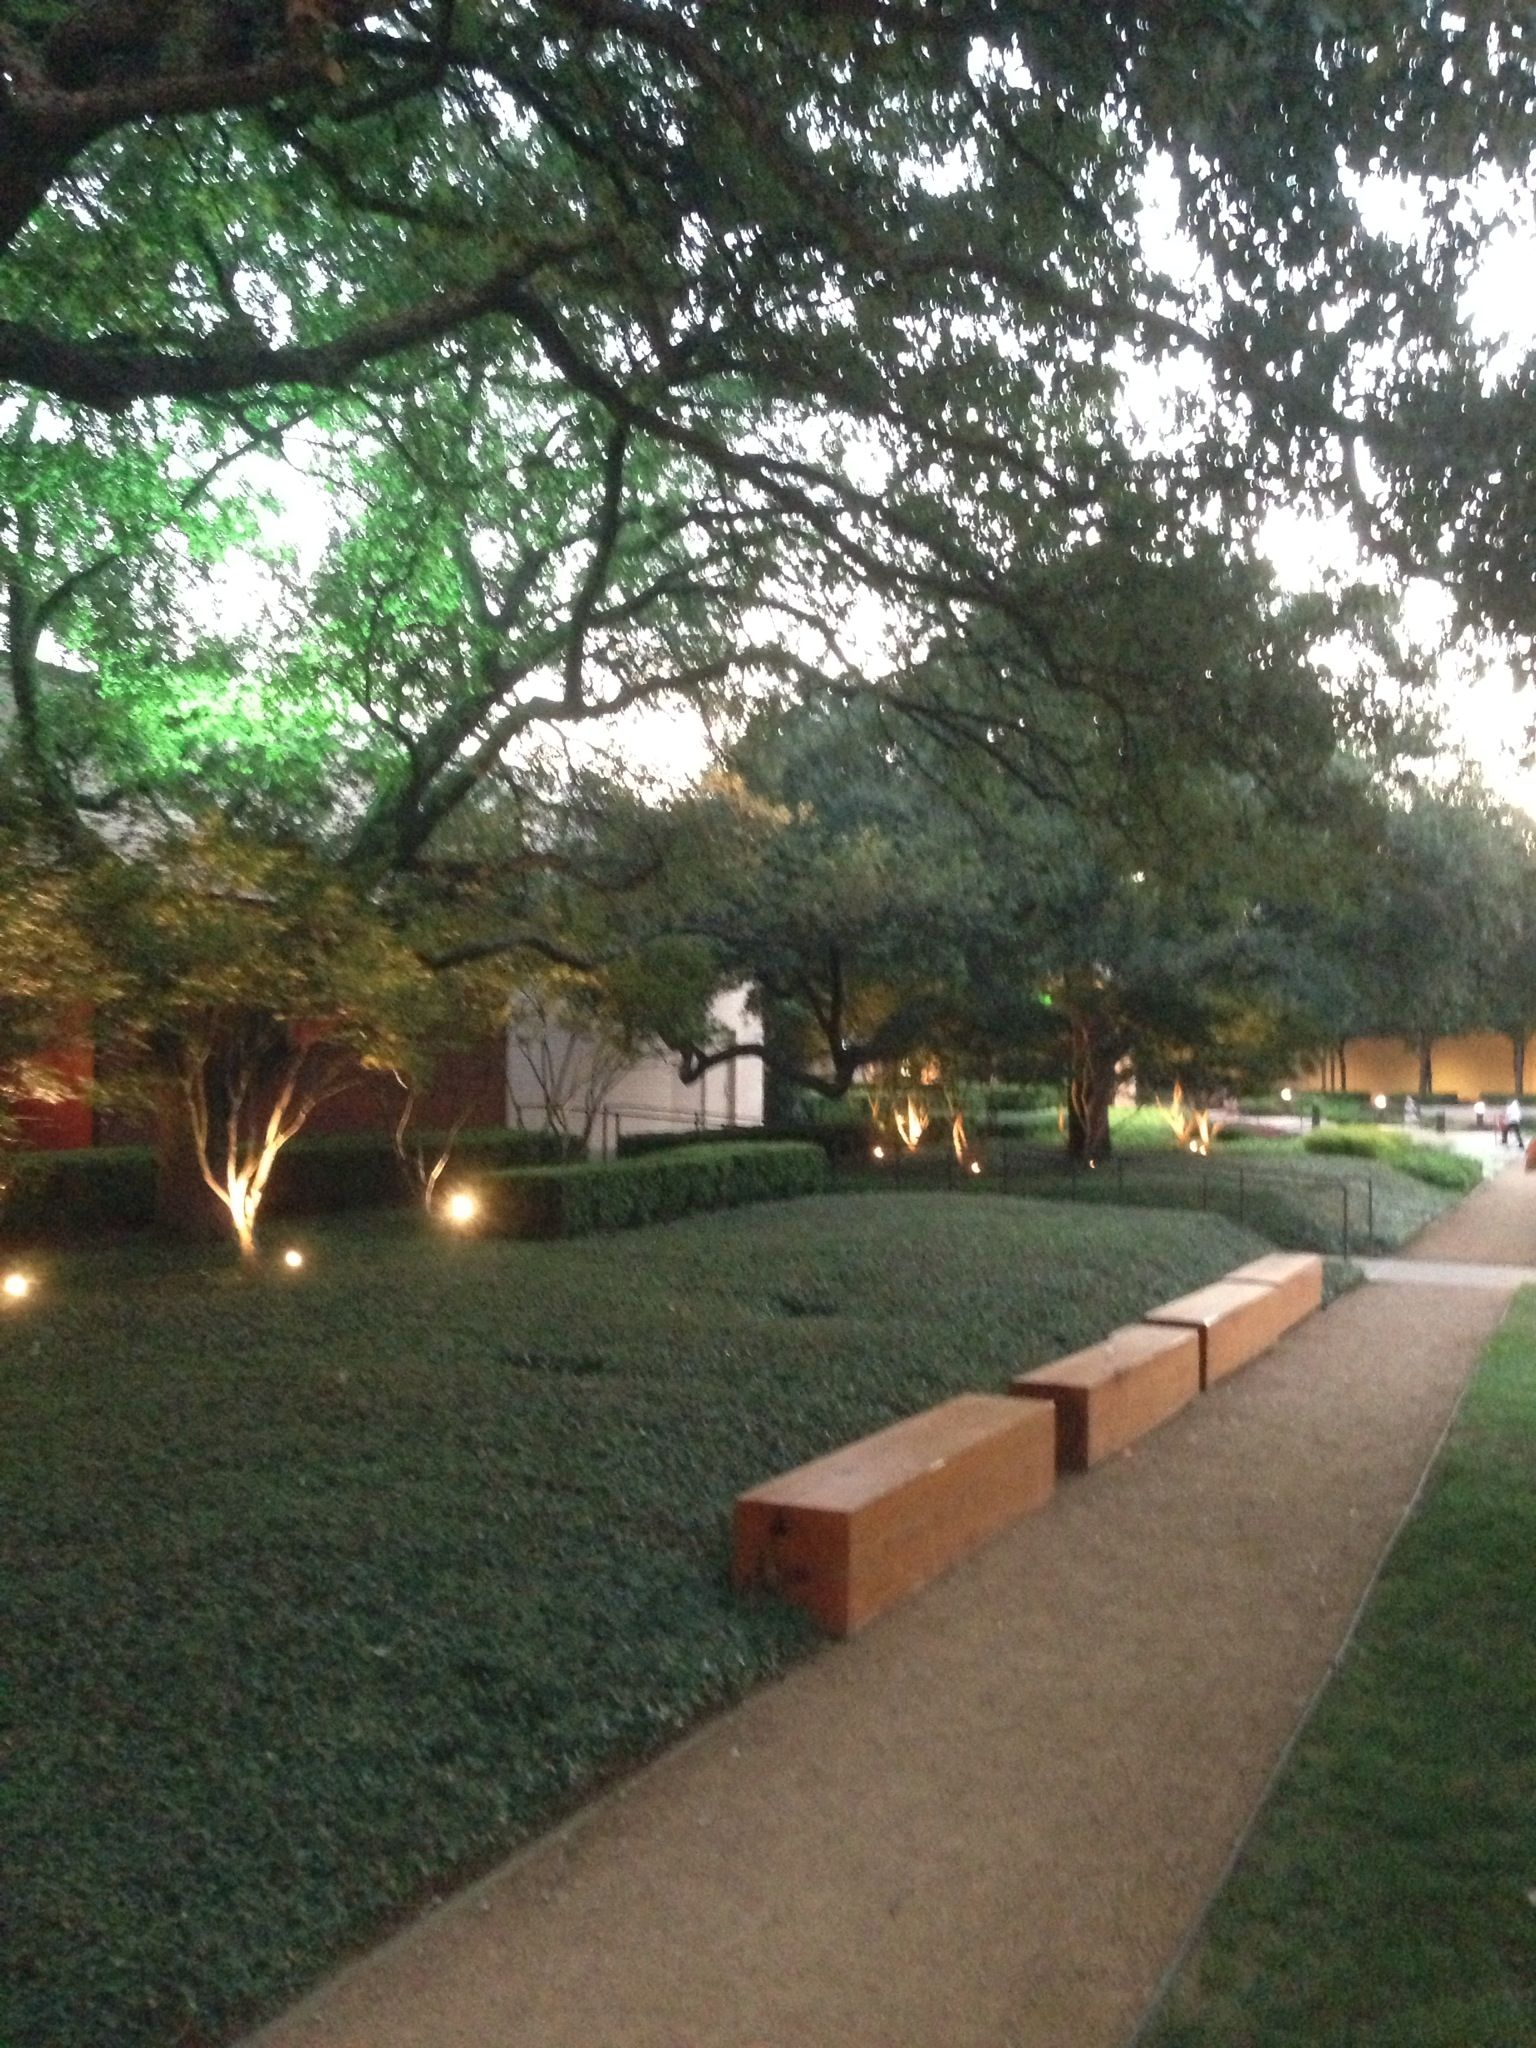 Centerpark at northpark mall dallas tx look at all of those awesome texas